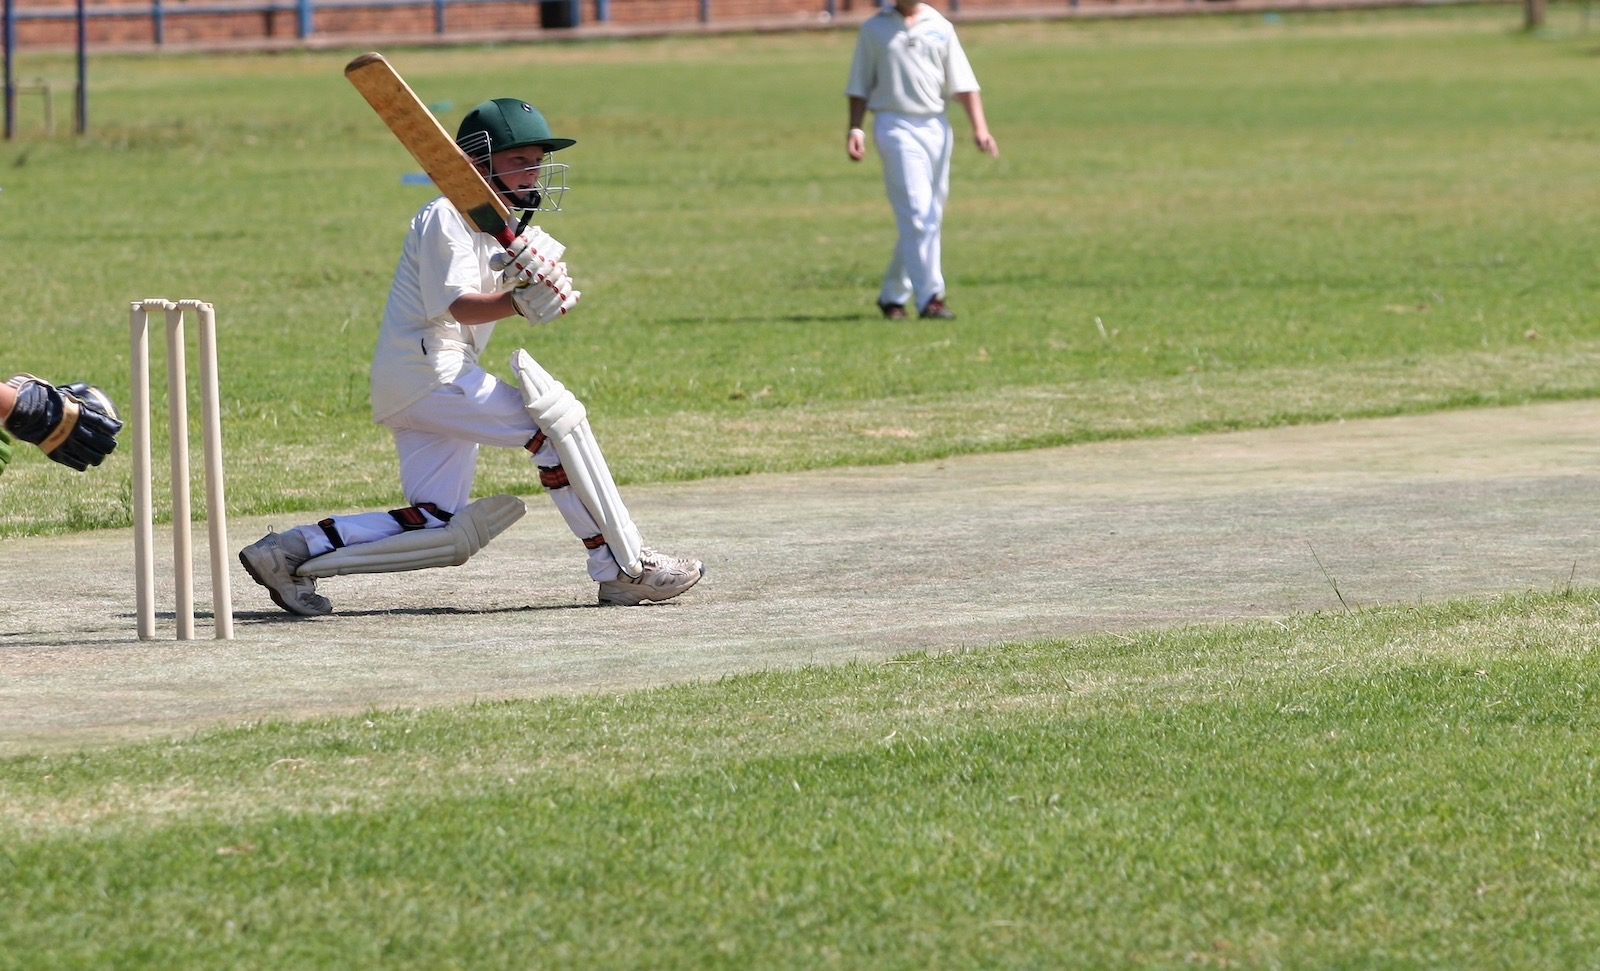 School cricket boy playing pull shot